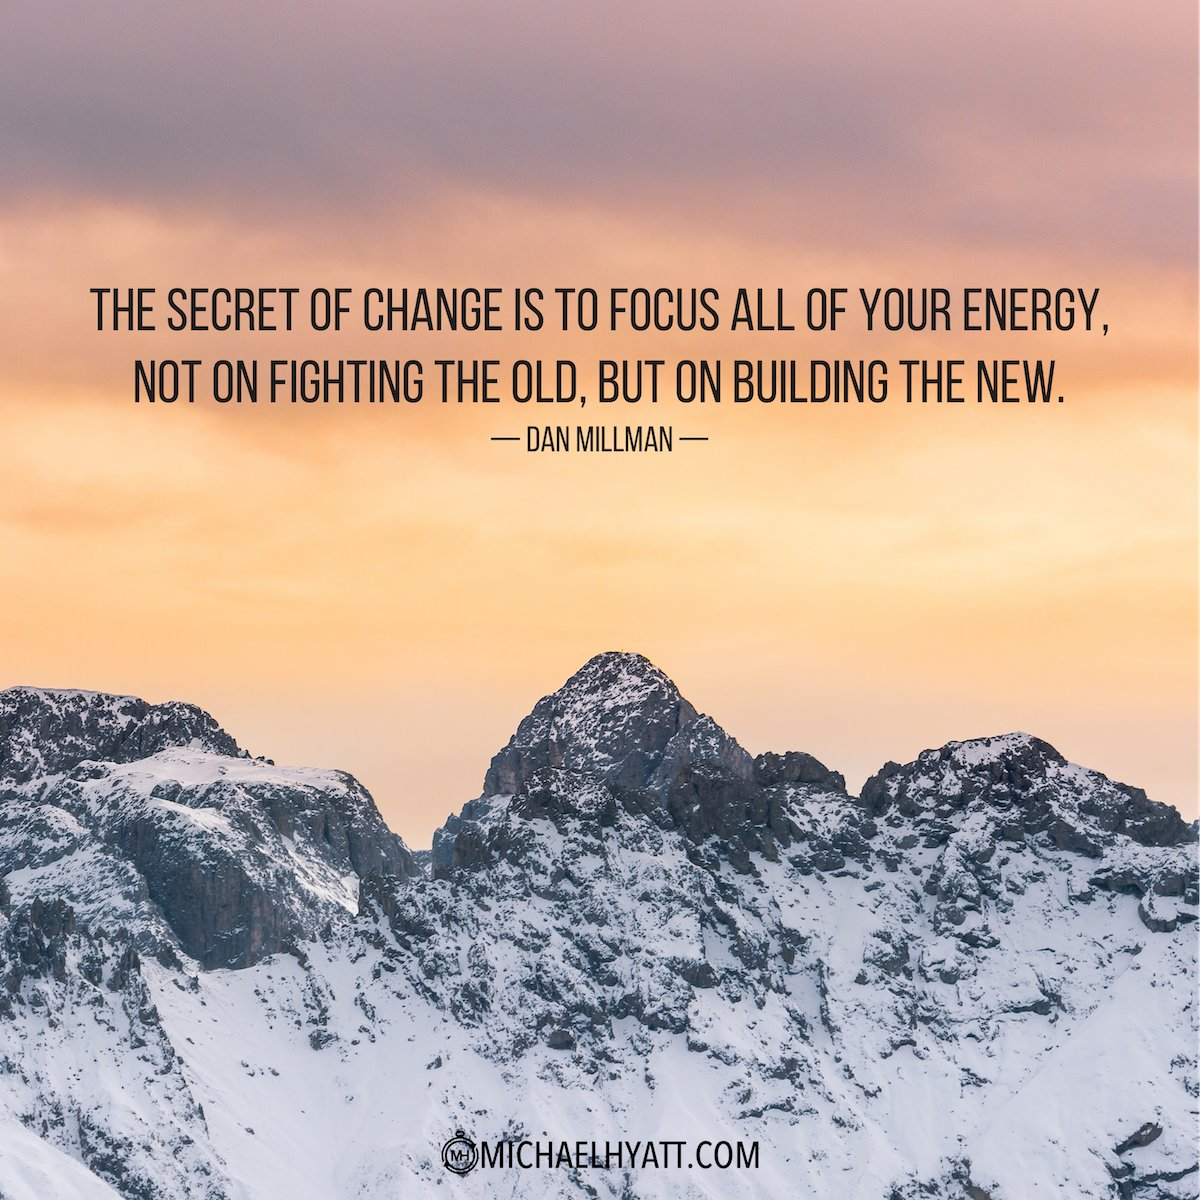 """""""The secret of change is to focus all of your energy not on fighting the old, but on building the new."""" – Dan Millman"""